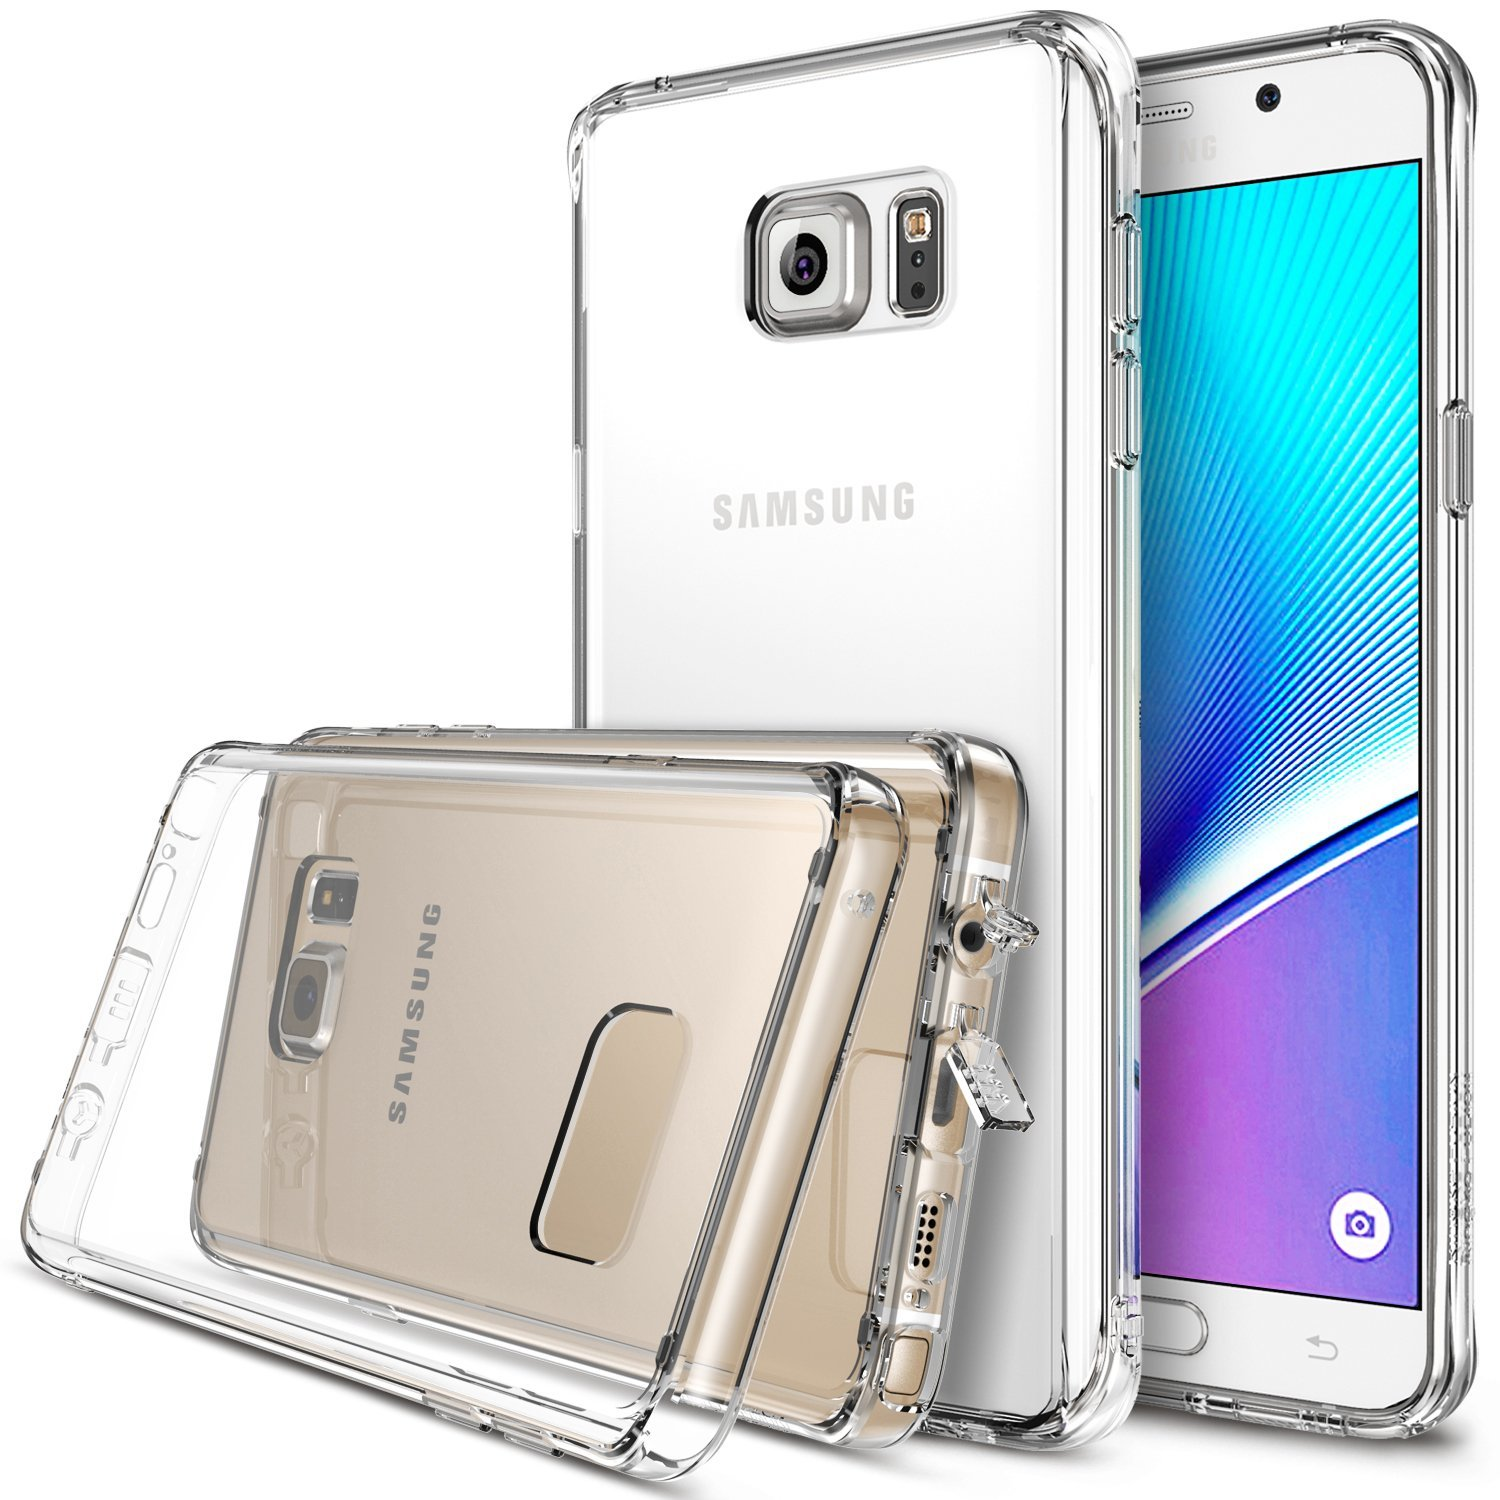 Samsung Galaxy Note 5 Case, Ringke [Clear] FUSION Series Full Top/ Bottom Coverage Dual Coated Hard Case